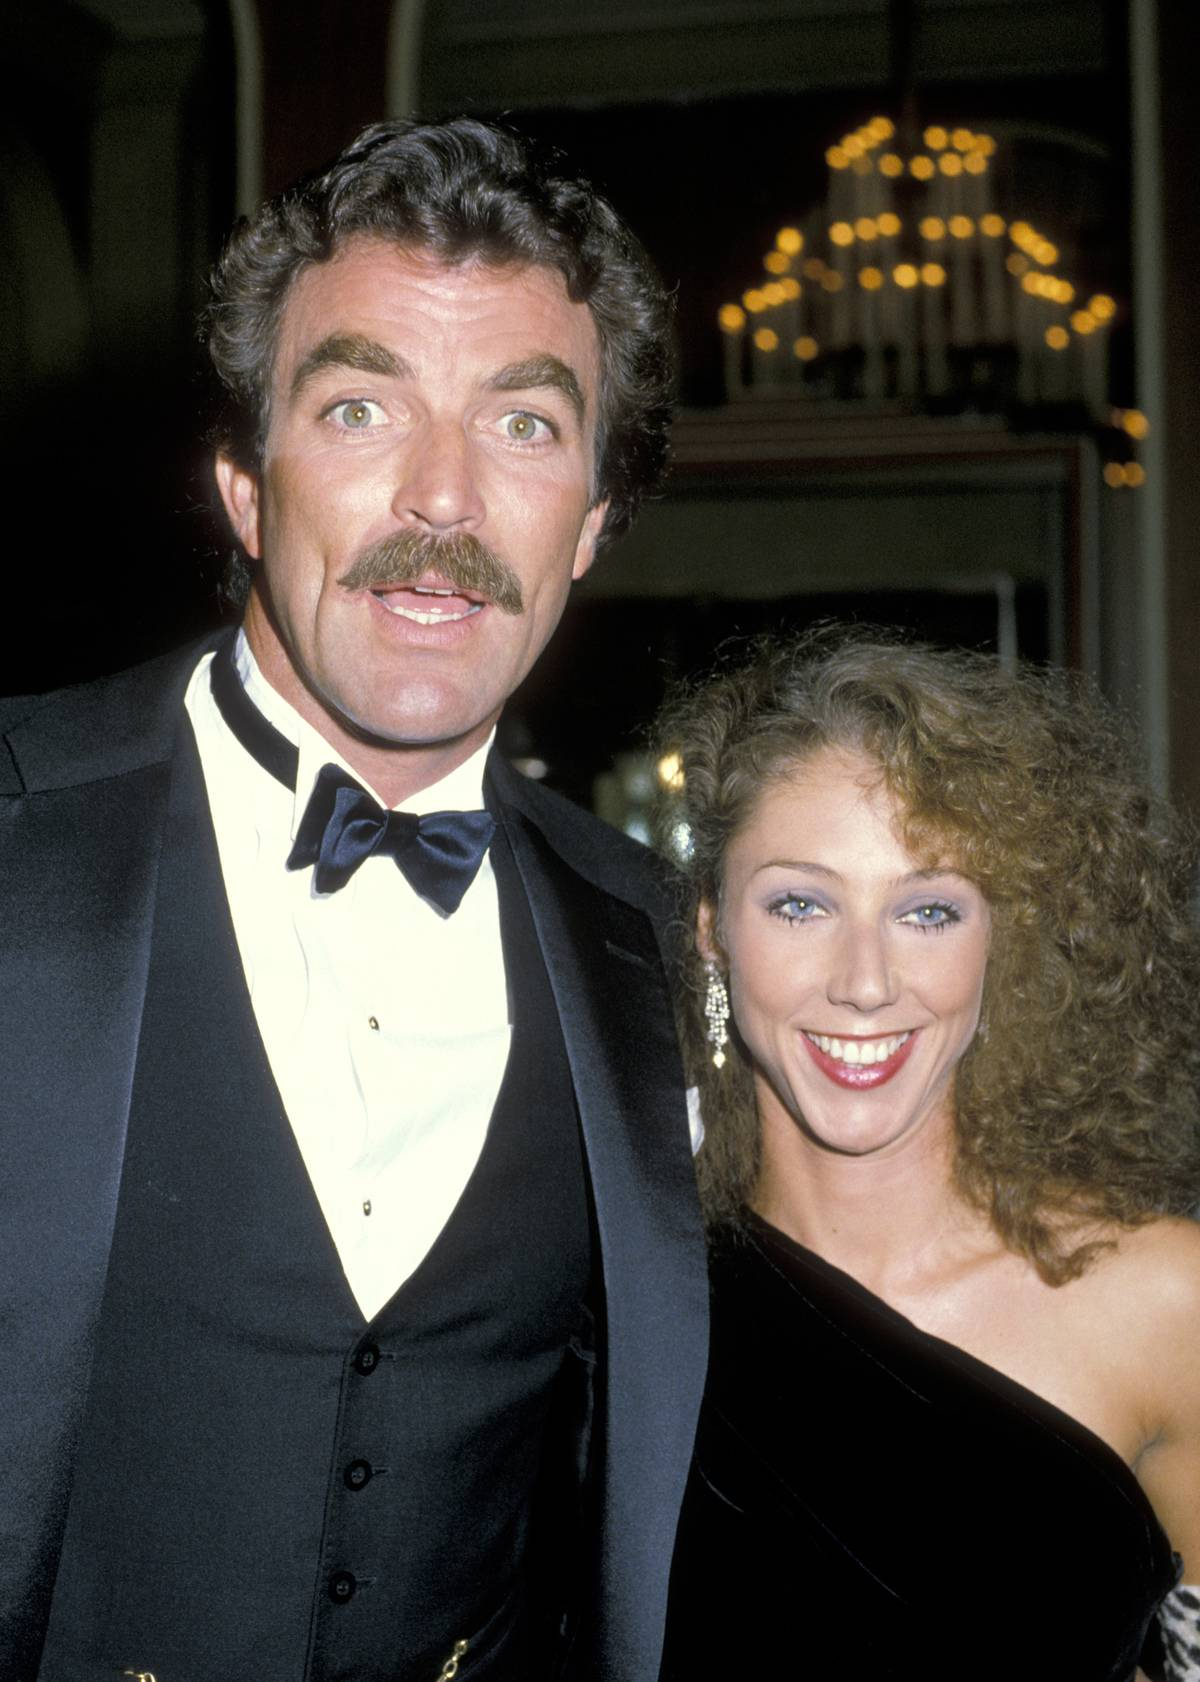 41st Annual Golden Globe Awards Selleck and Mack